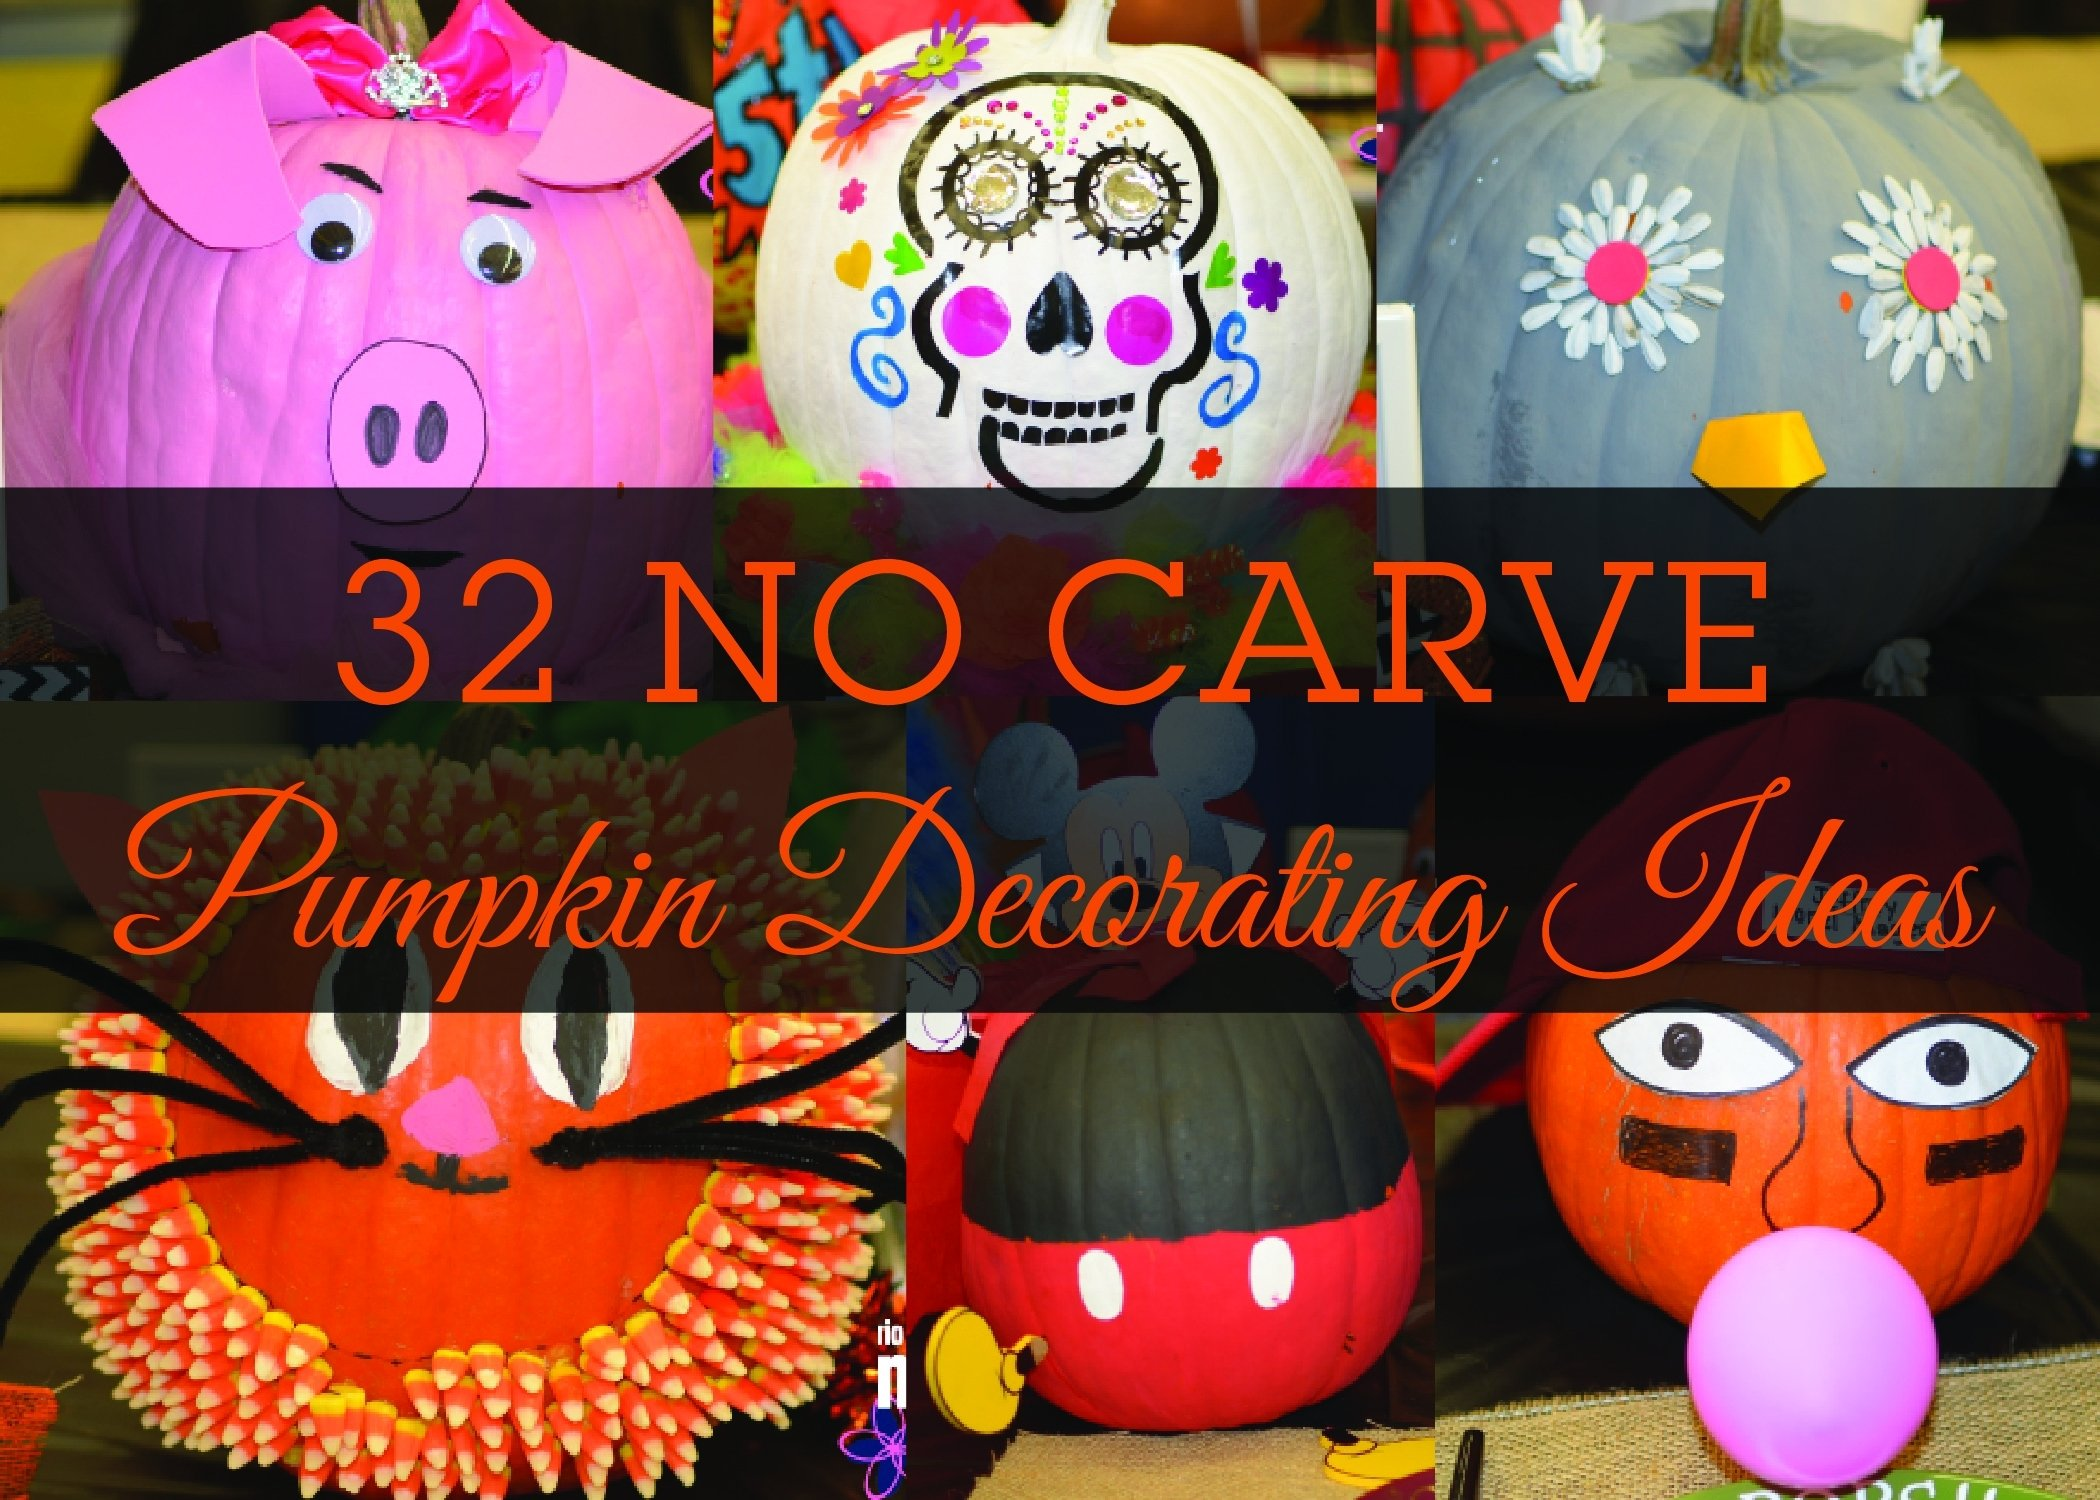 10 Attractive Pumpkin Decorating Ideas Without Carving 32 no carve pumpkin decorating ideas 1 2020